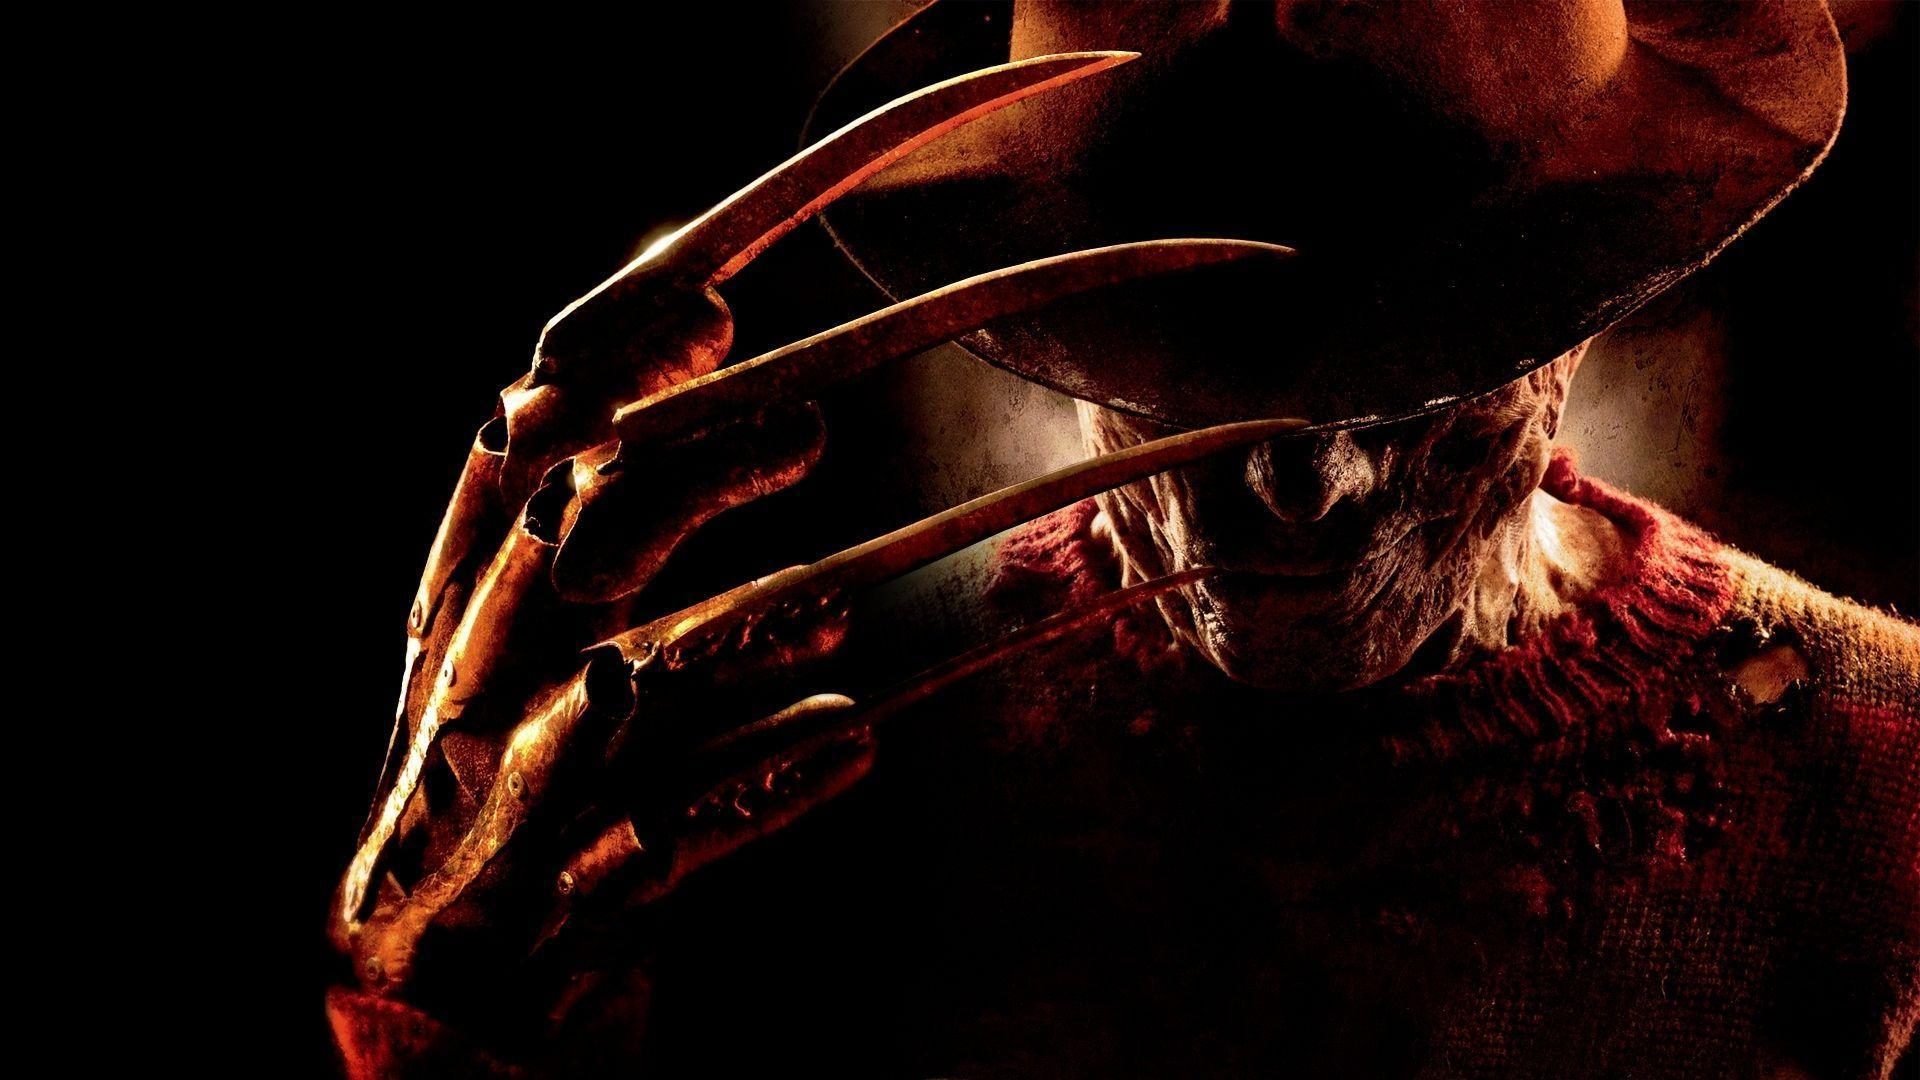 Robert Englund | Elm Street Needs A Good Prequel